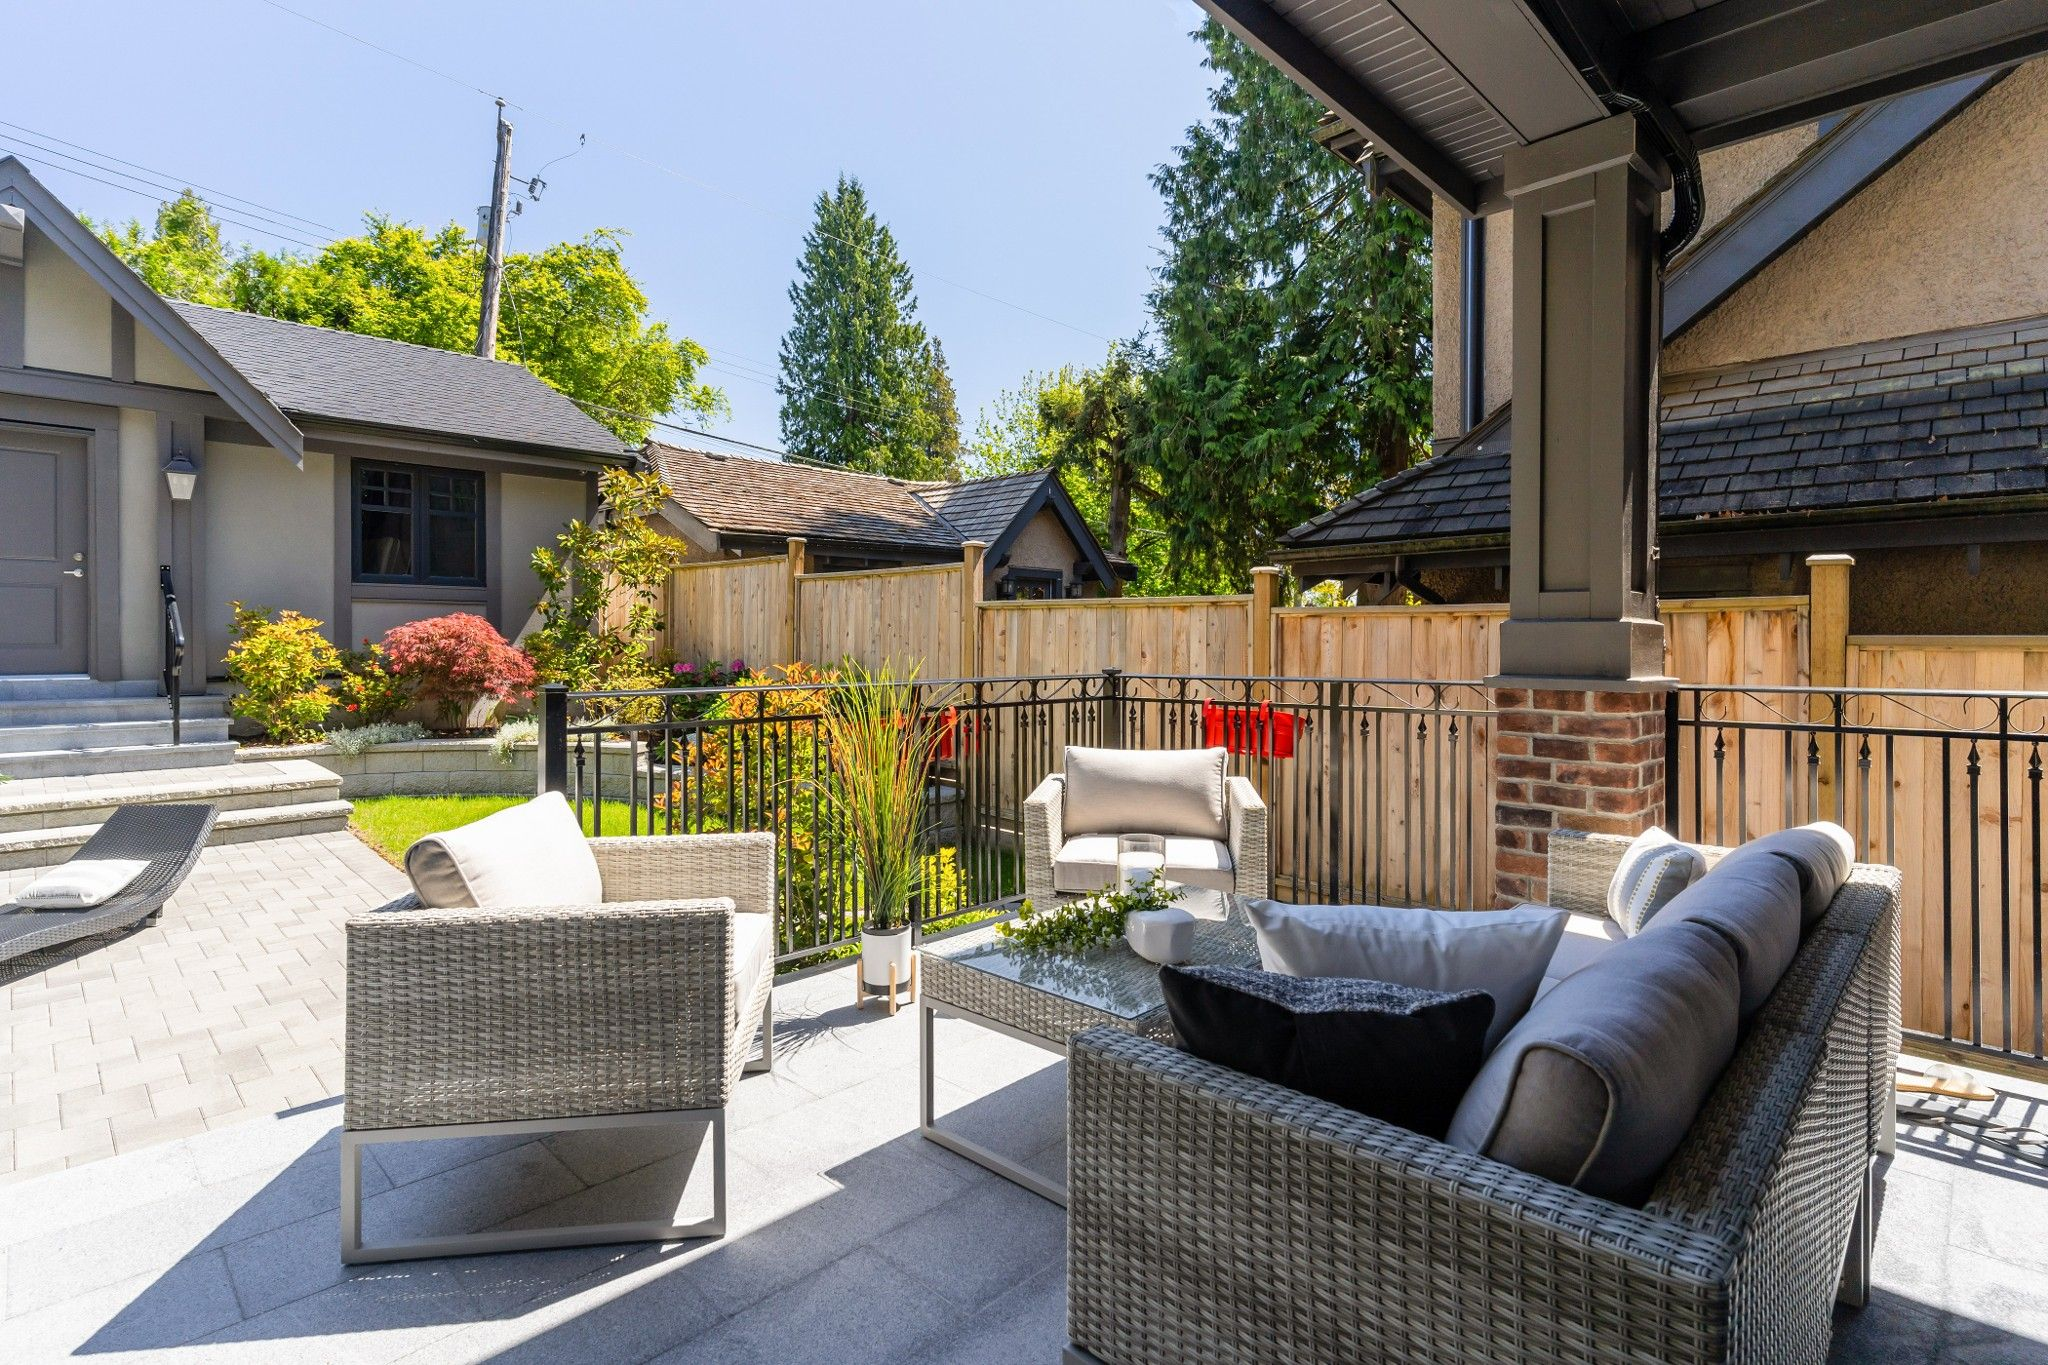 Photo 39: Photos: 5756 ALMA STREET in VANCOUVER: Southlands House for sale (Vancouver West)  : MLS®# R2588229